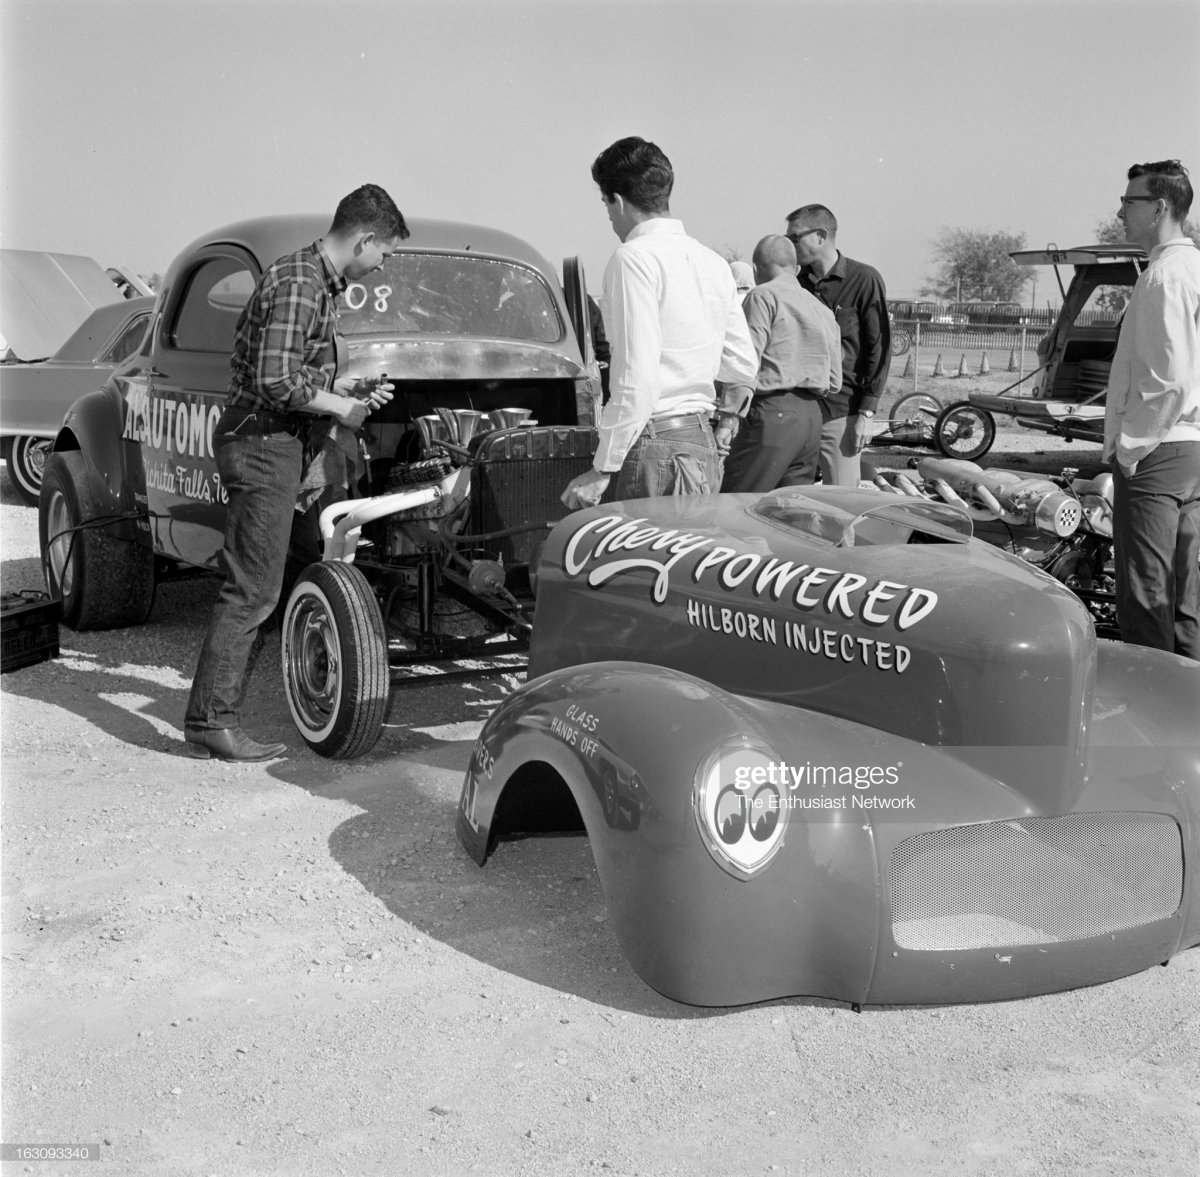 1 1965 NHRA World Championship l Drag Races  A.jpg